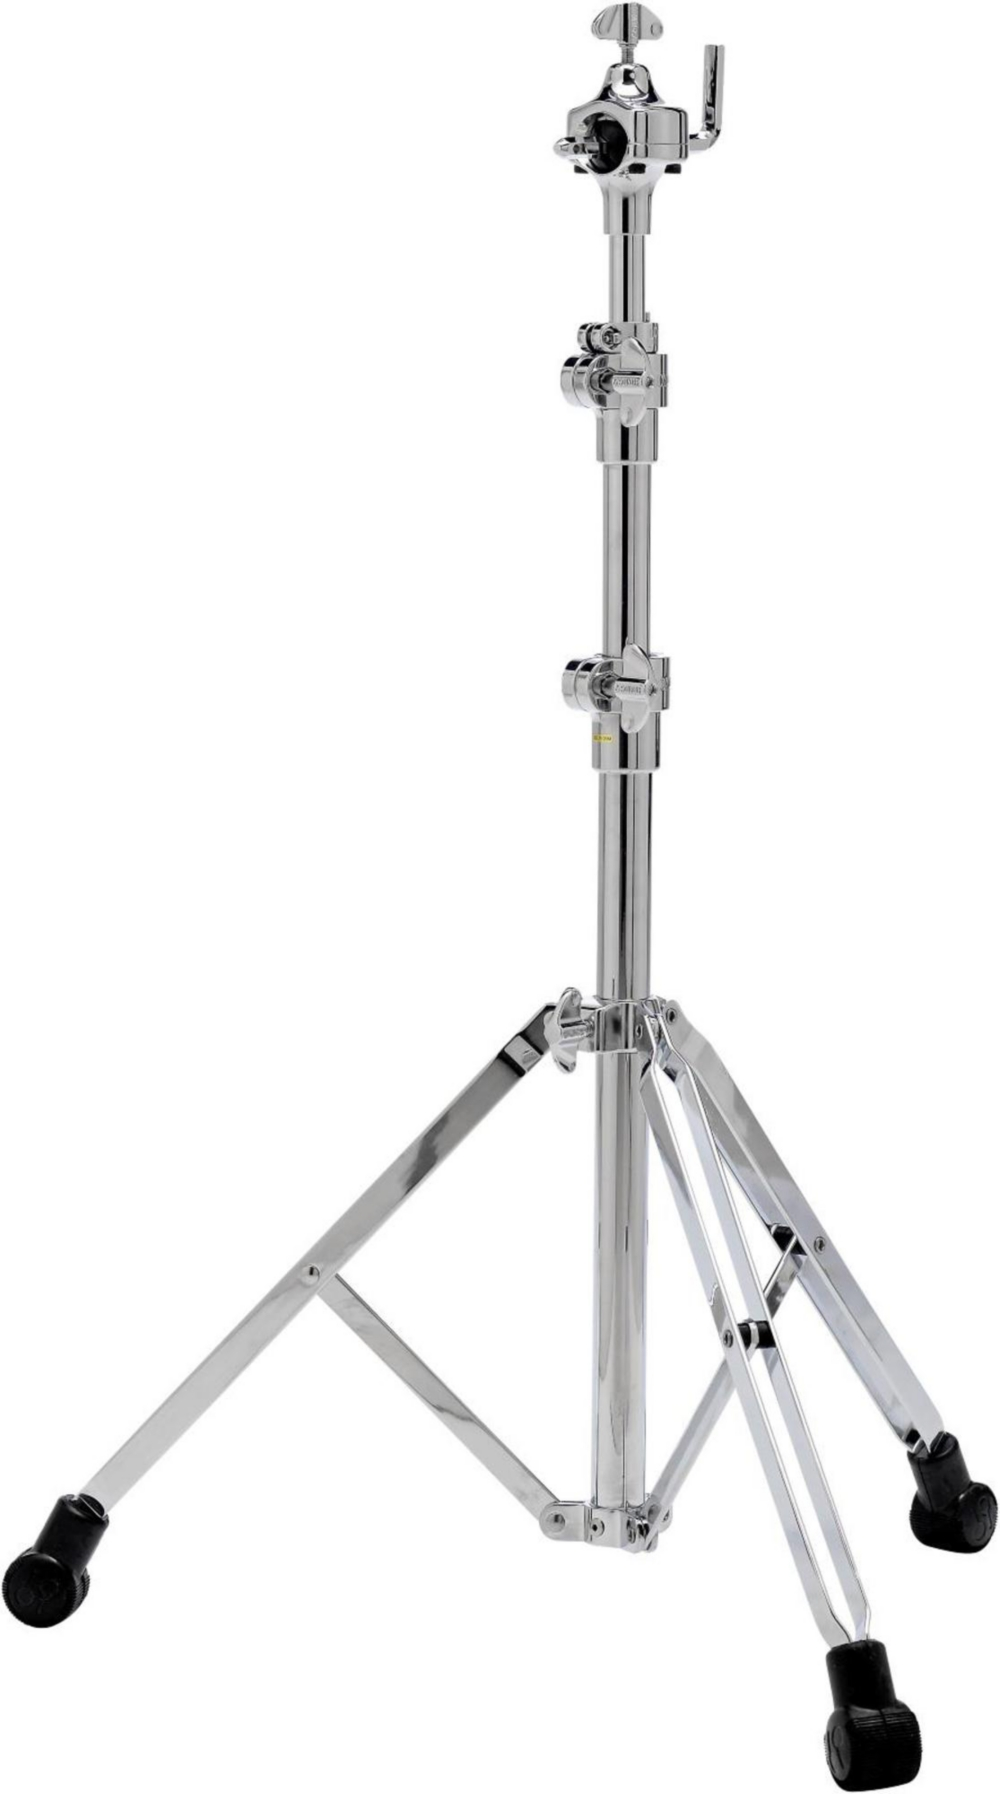 Sonor 4000 Series Single Tom Stand by Sonor